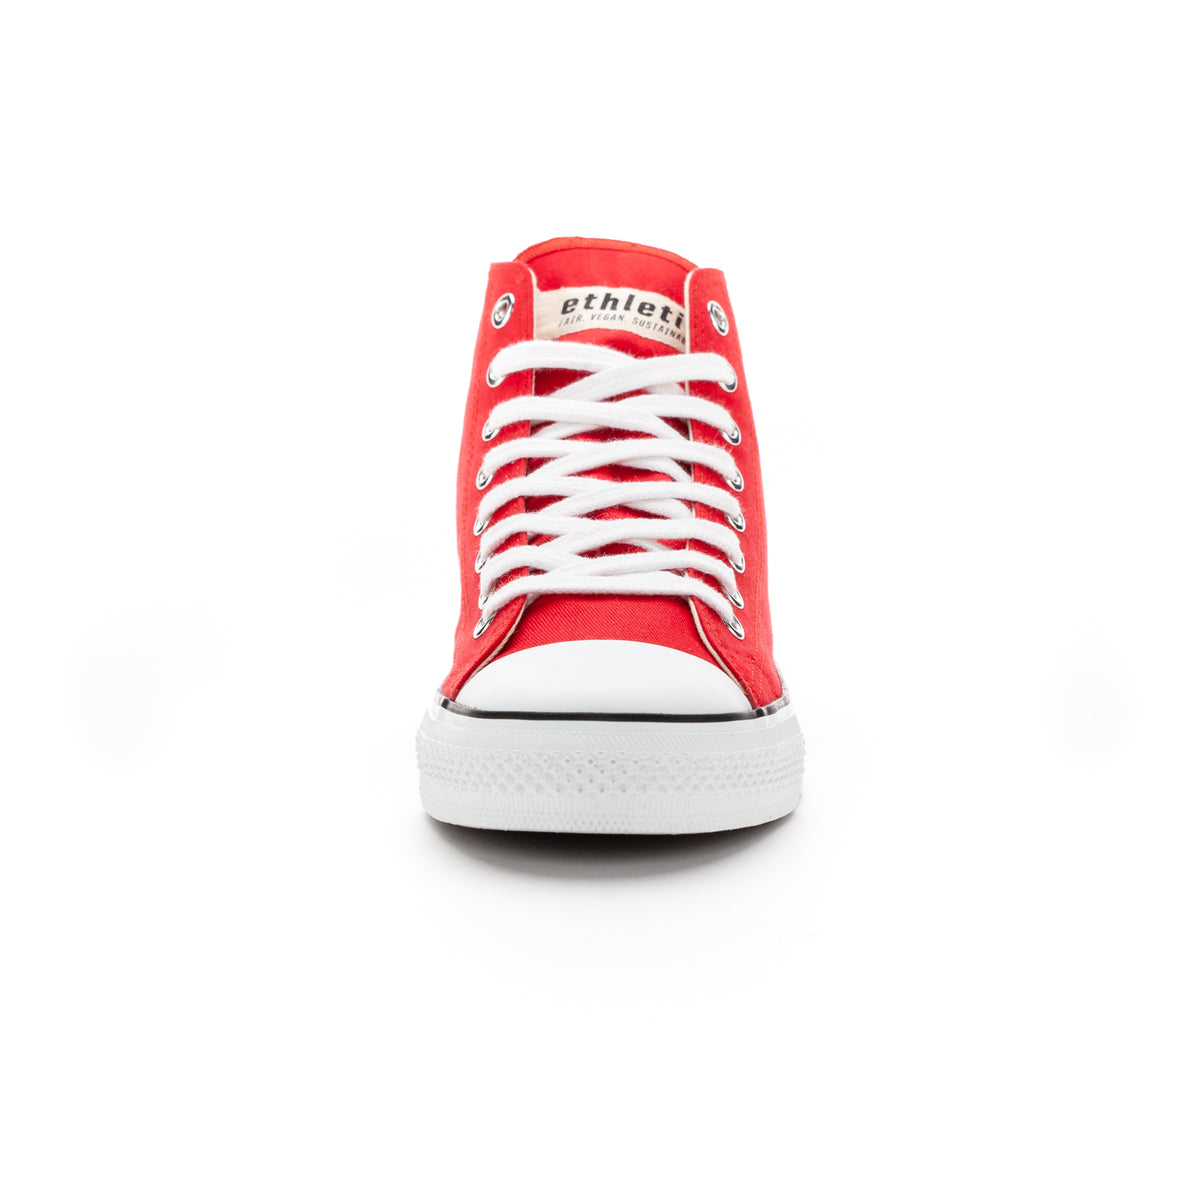 Fair Trainer White Cap Hi Cut Cranberry Red | Just White